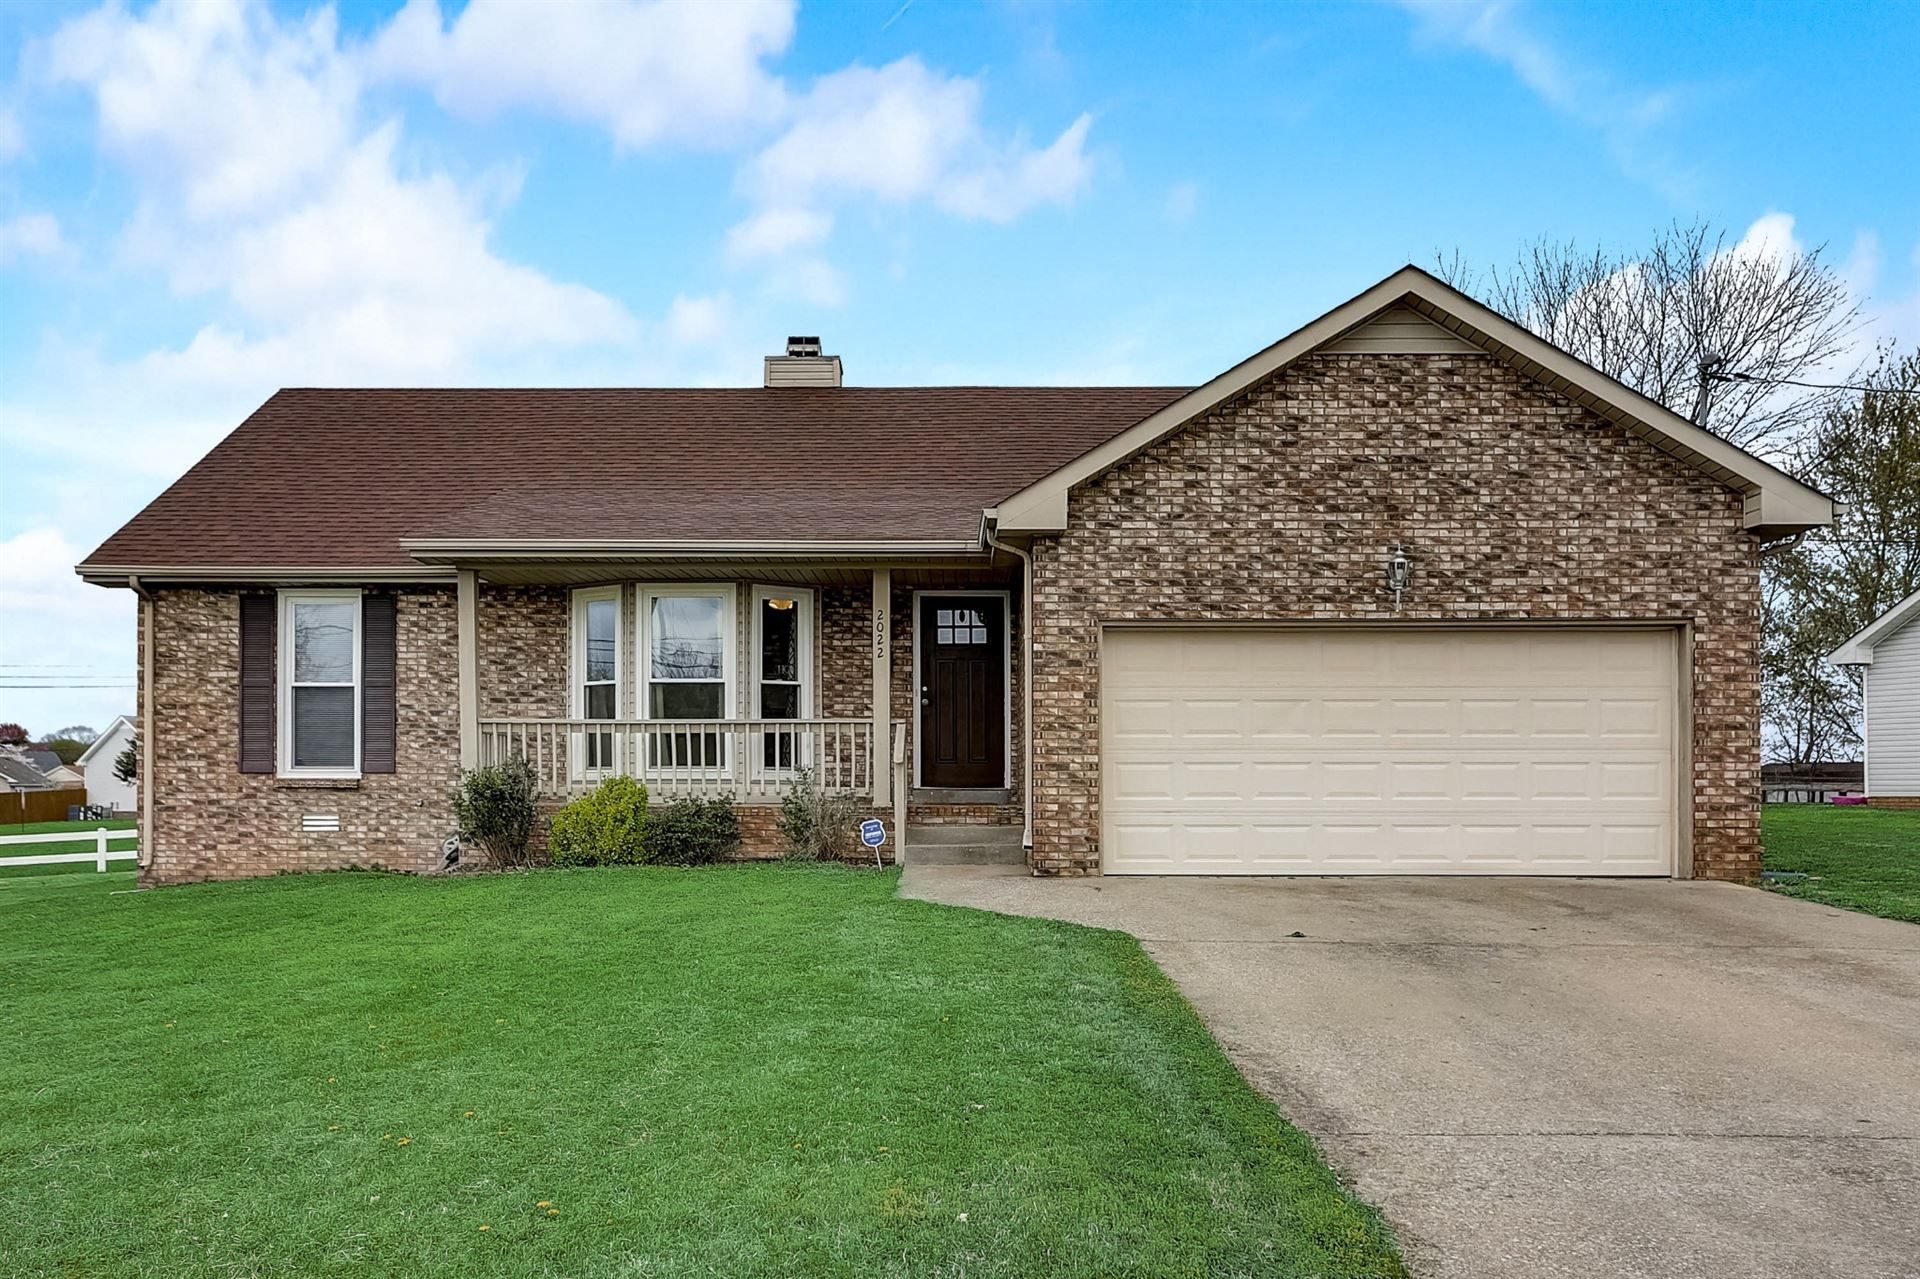 2022 Windmeade Dr, Clarksville, TN 37042 - MLS#: 2240594